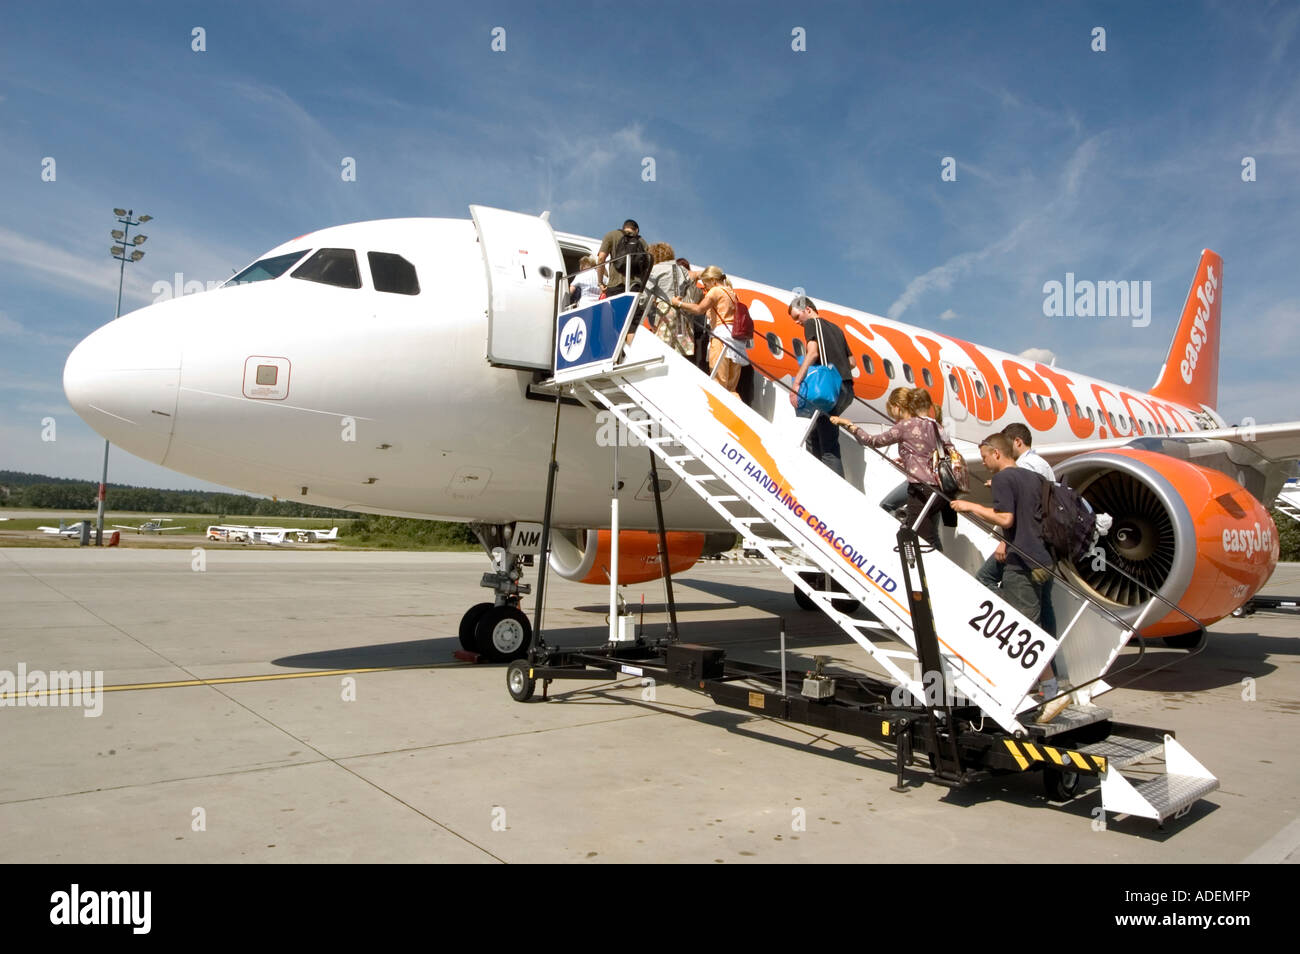 Passengers boarding easyJet aircraft at Cracow airport Poland - Stock Image